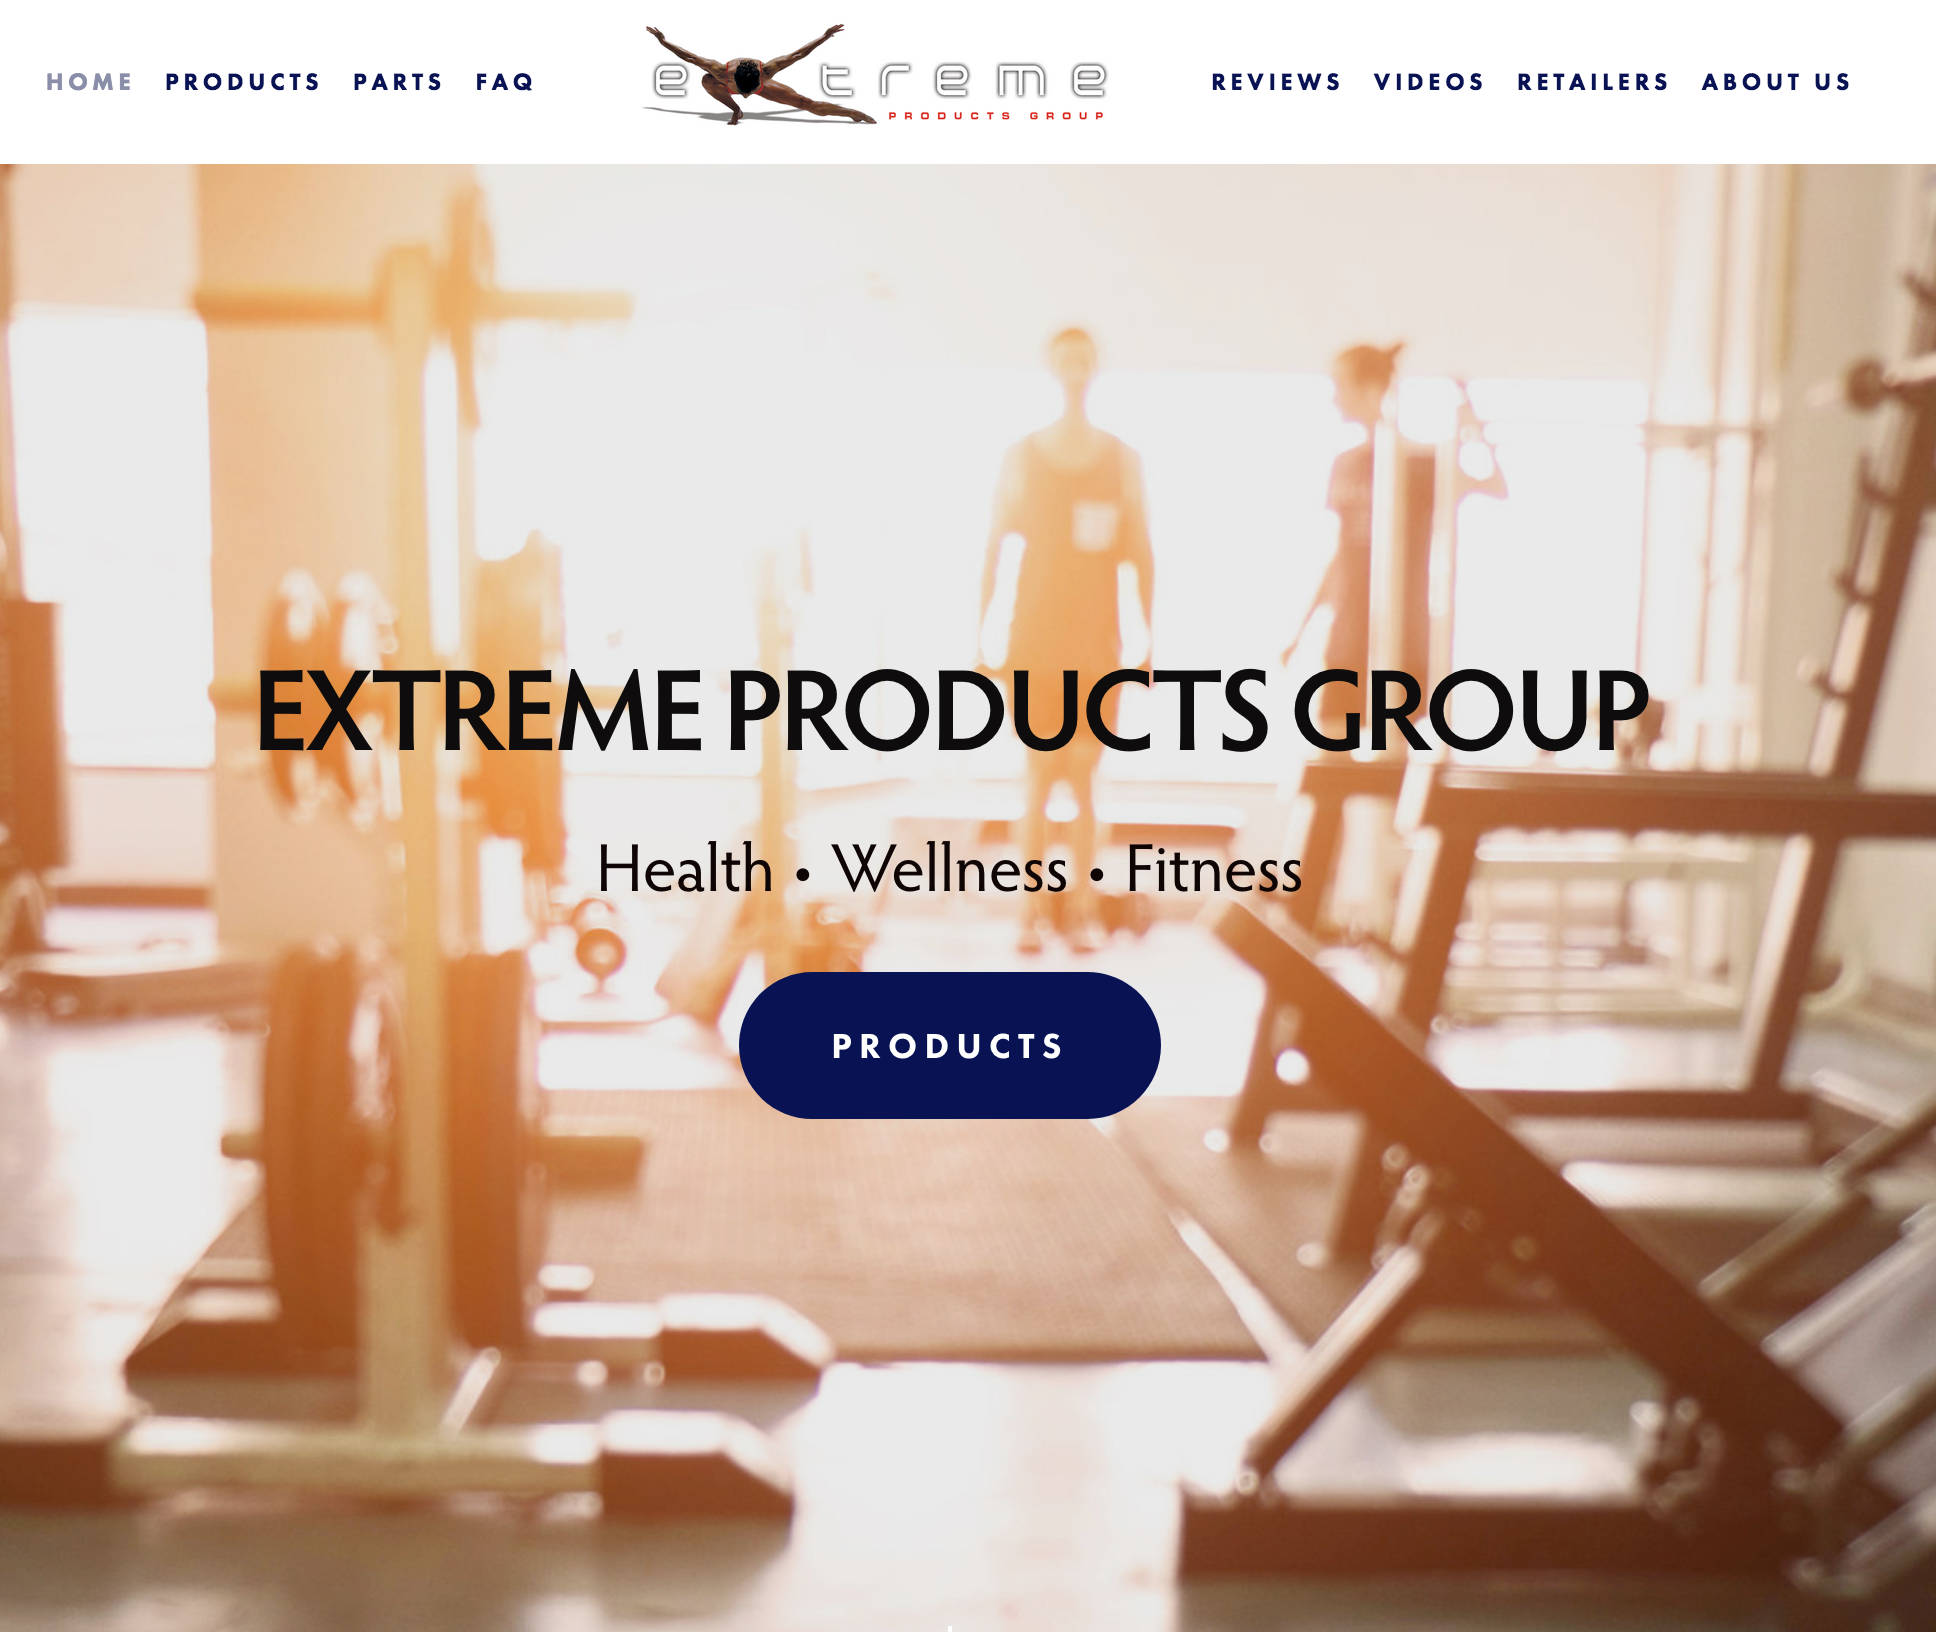 Leading Health, Wellness, & Fitness Products Sold in Nationwide Retail Stores - www.extremeproductsgroup.com